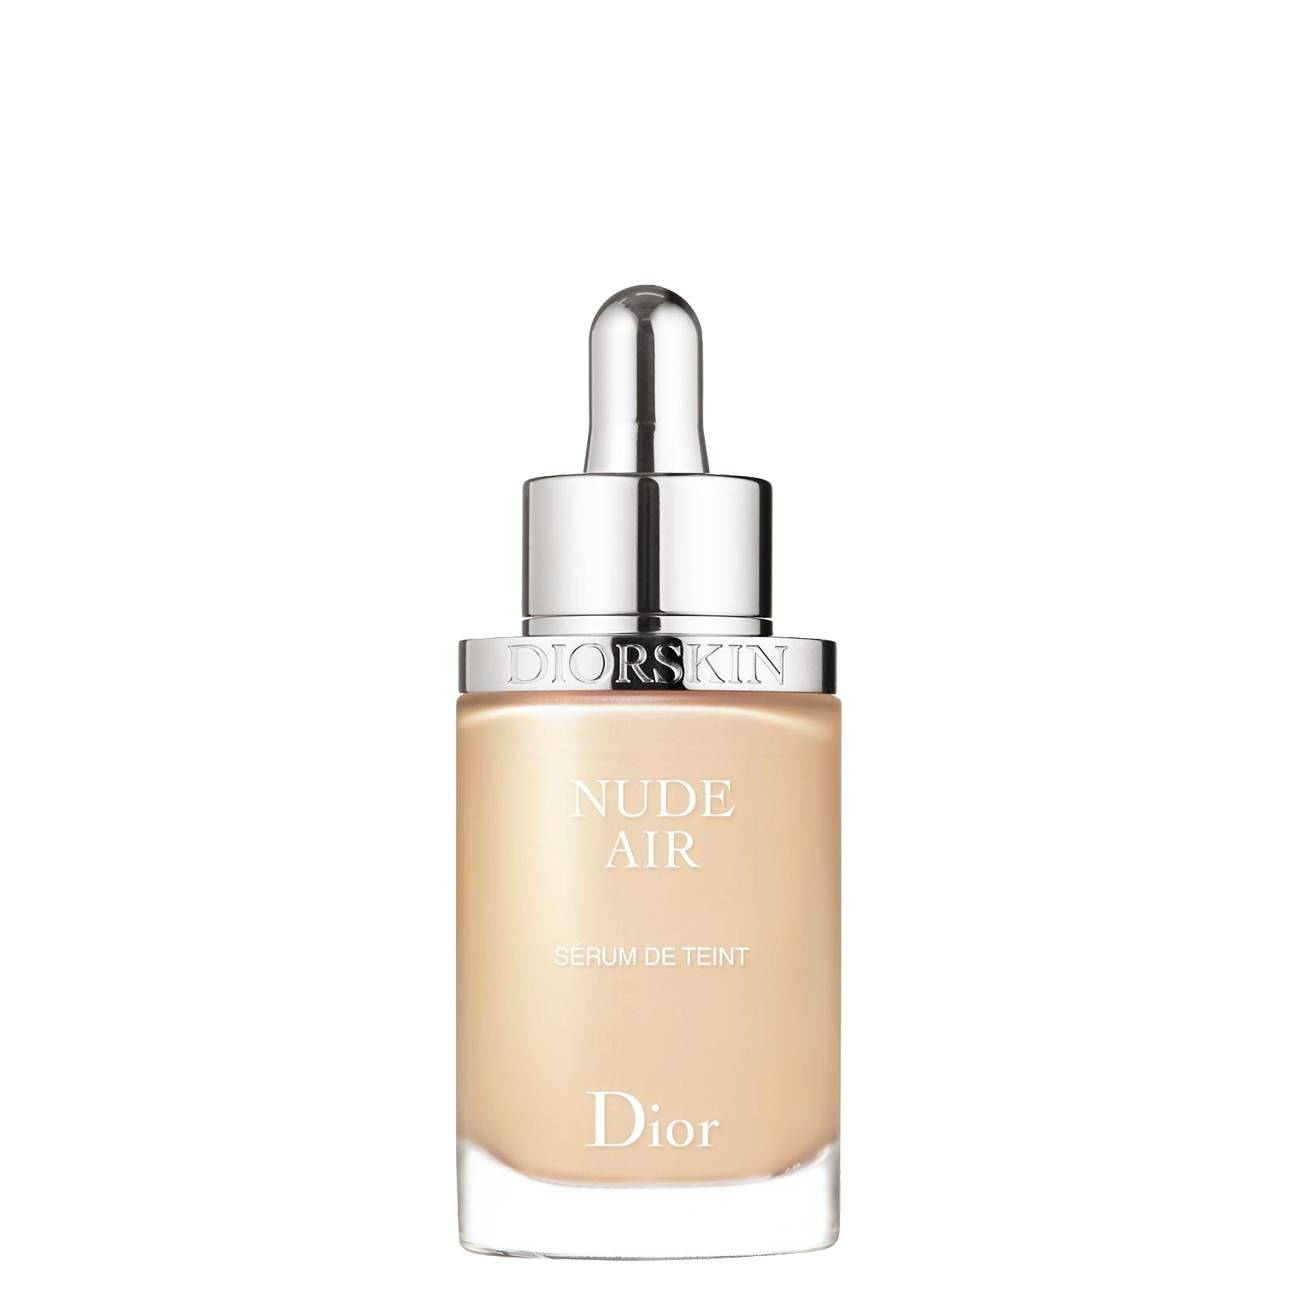 Diorskin Nude Air Serum - 30 Ml 020-Light Beige Dior imagine 2021 bestvalue.eu